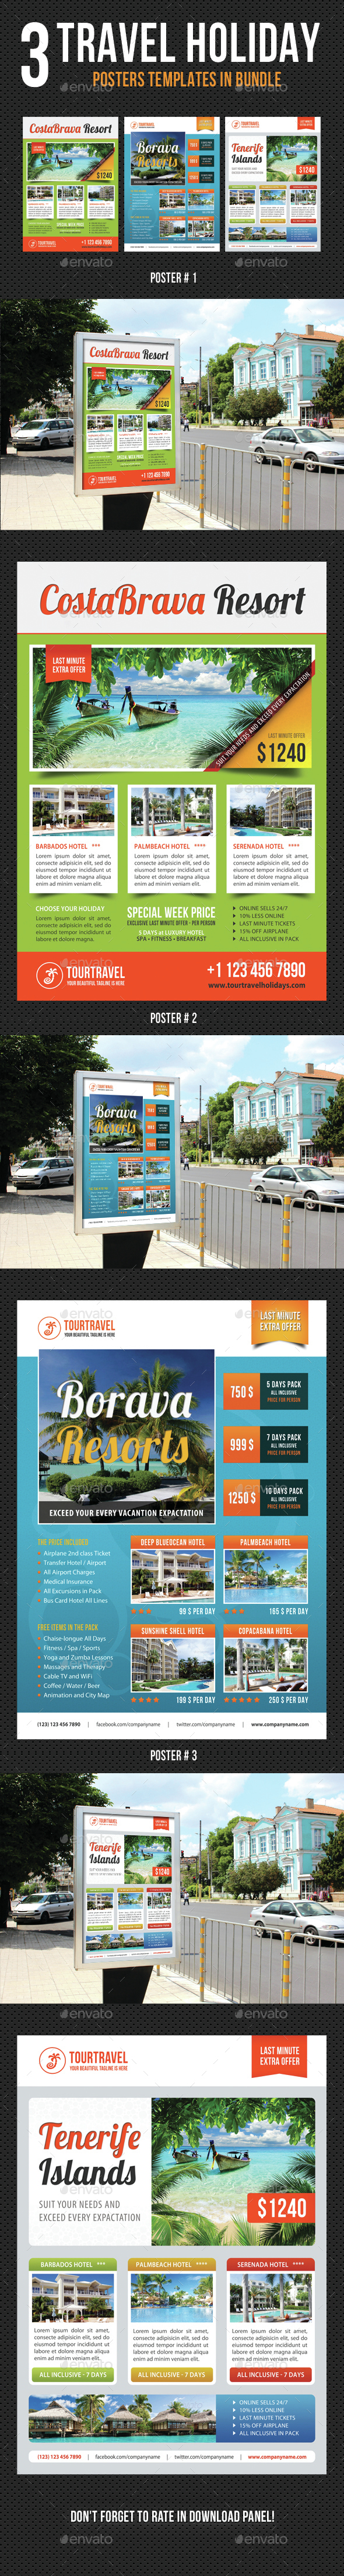 3 Travel Holiday Poster Bundle 01 - Signage Print Templates